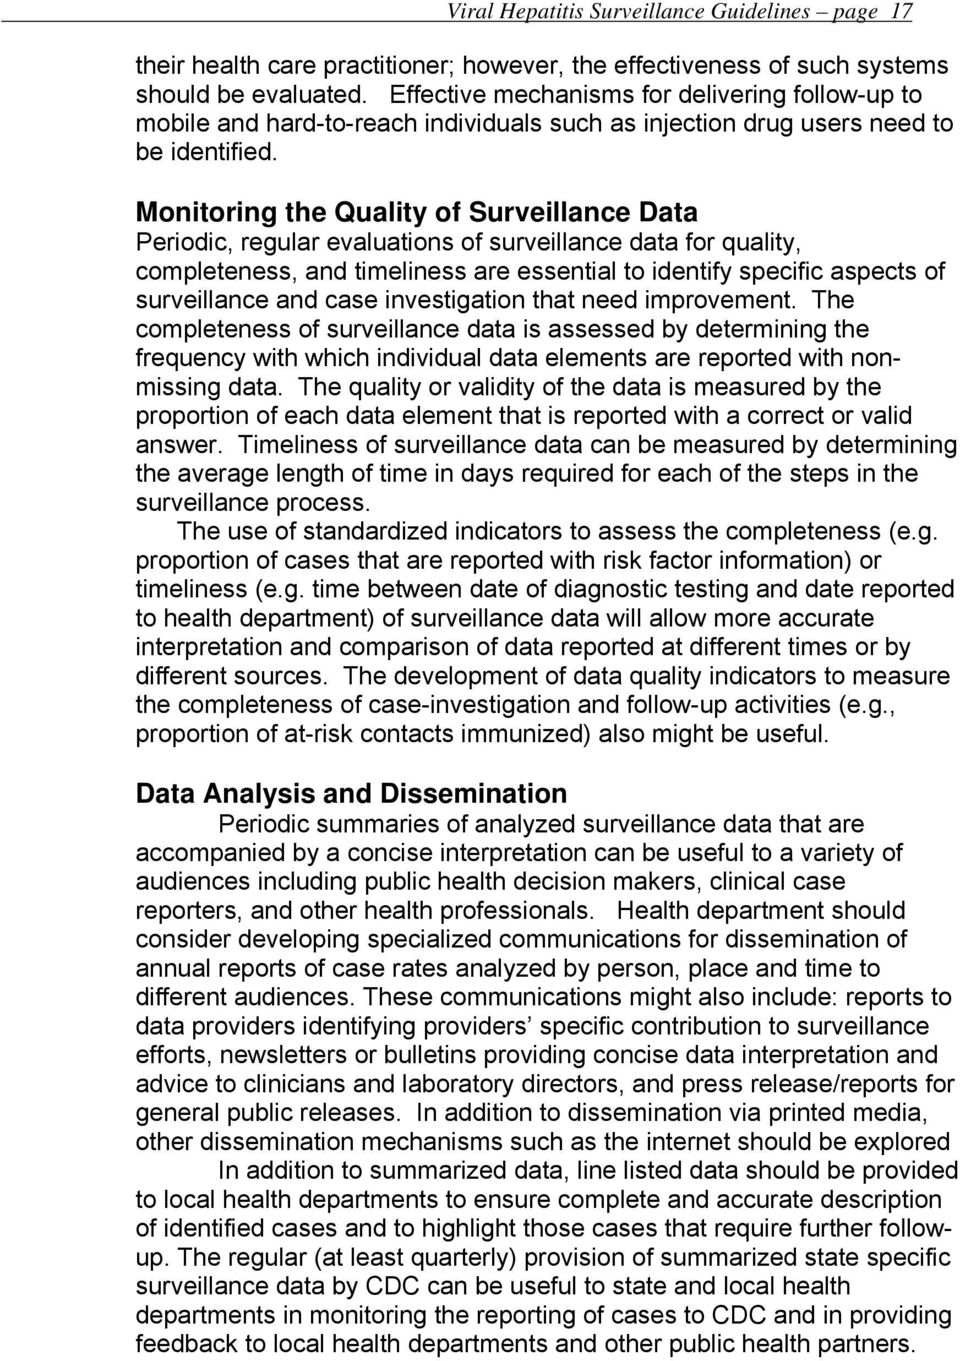 Monitoring the Quality of Surveillance Data Periodic, regular evaluations of surveillance data for quality, completeness, and timeliness are essential to identify specific aspects of surveillance and